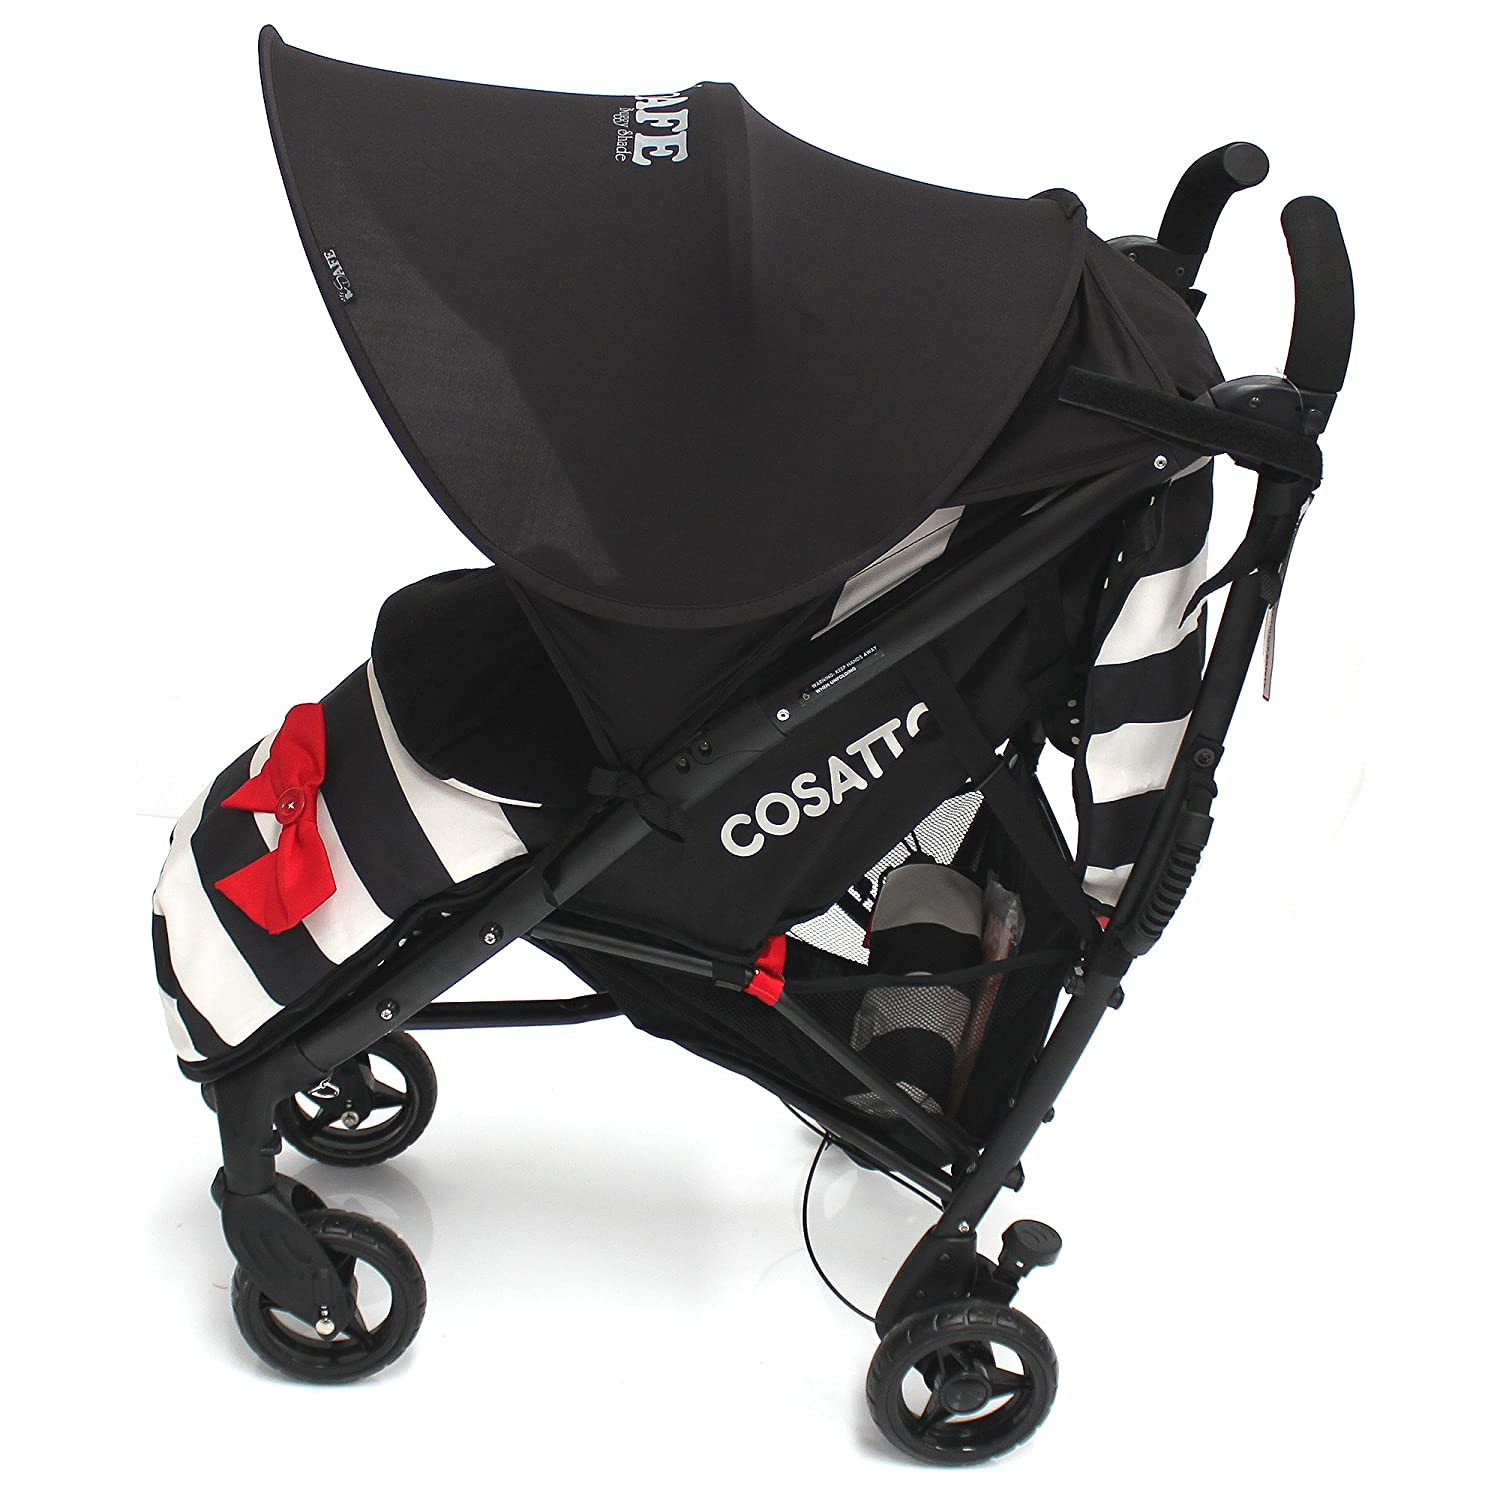 Isafe Buggy Shade Maker For Cosatto Yo Universal Stroller